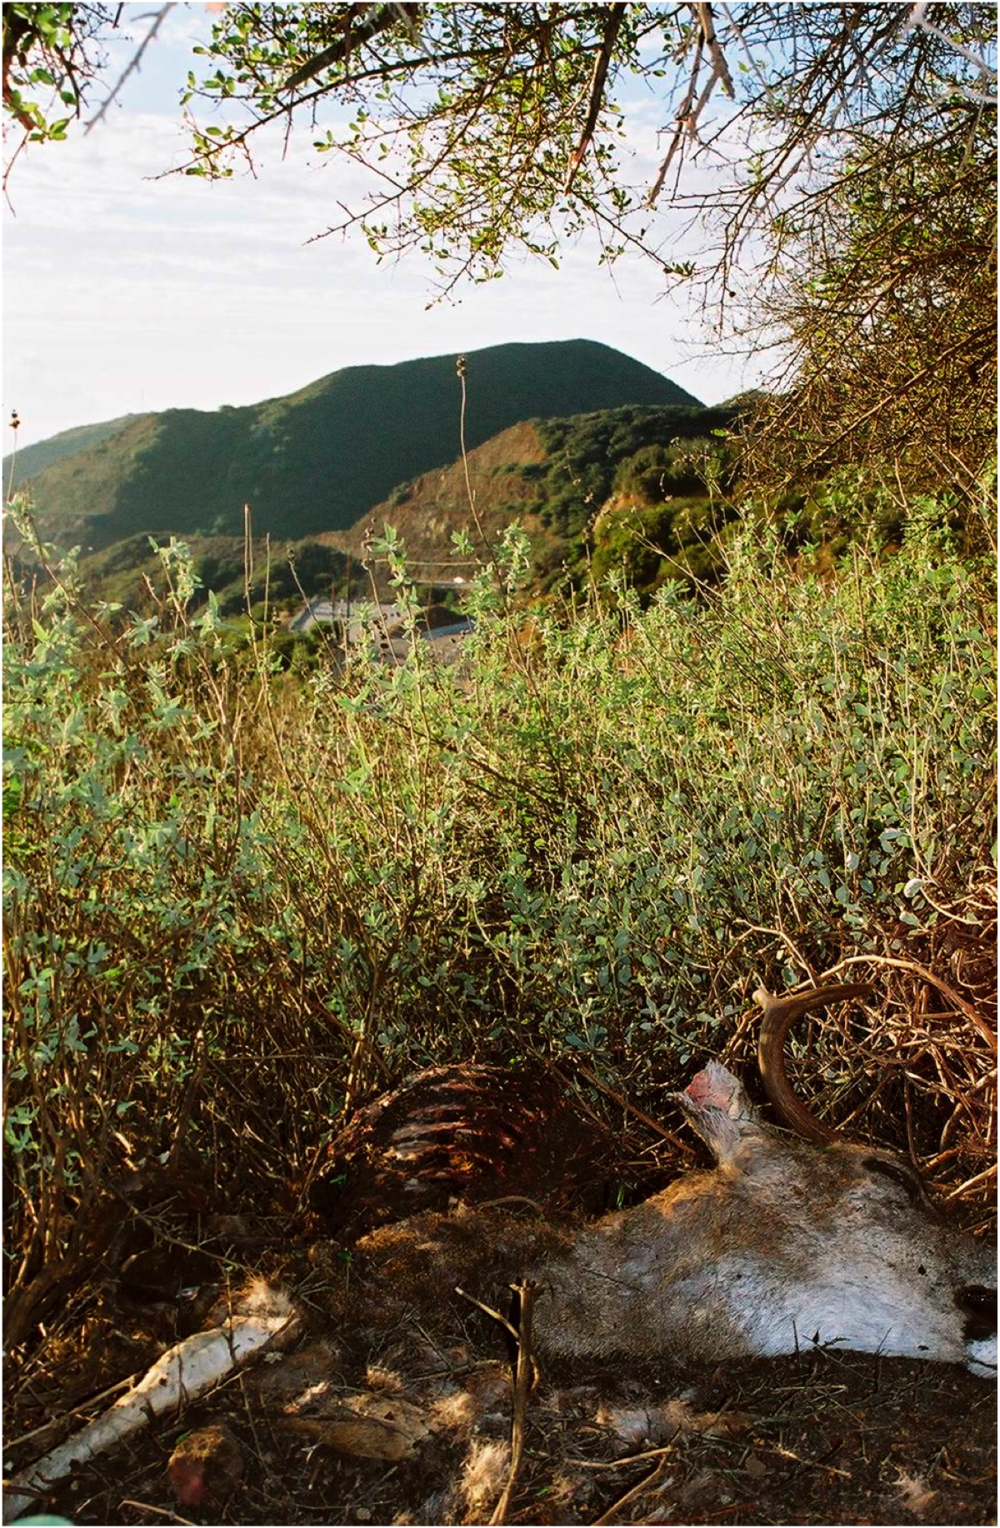 A photo of a cached deer in the Santa Monica Mountains.